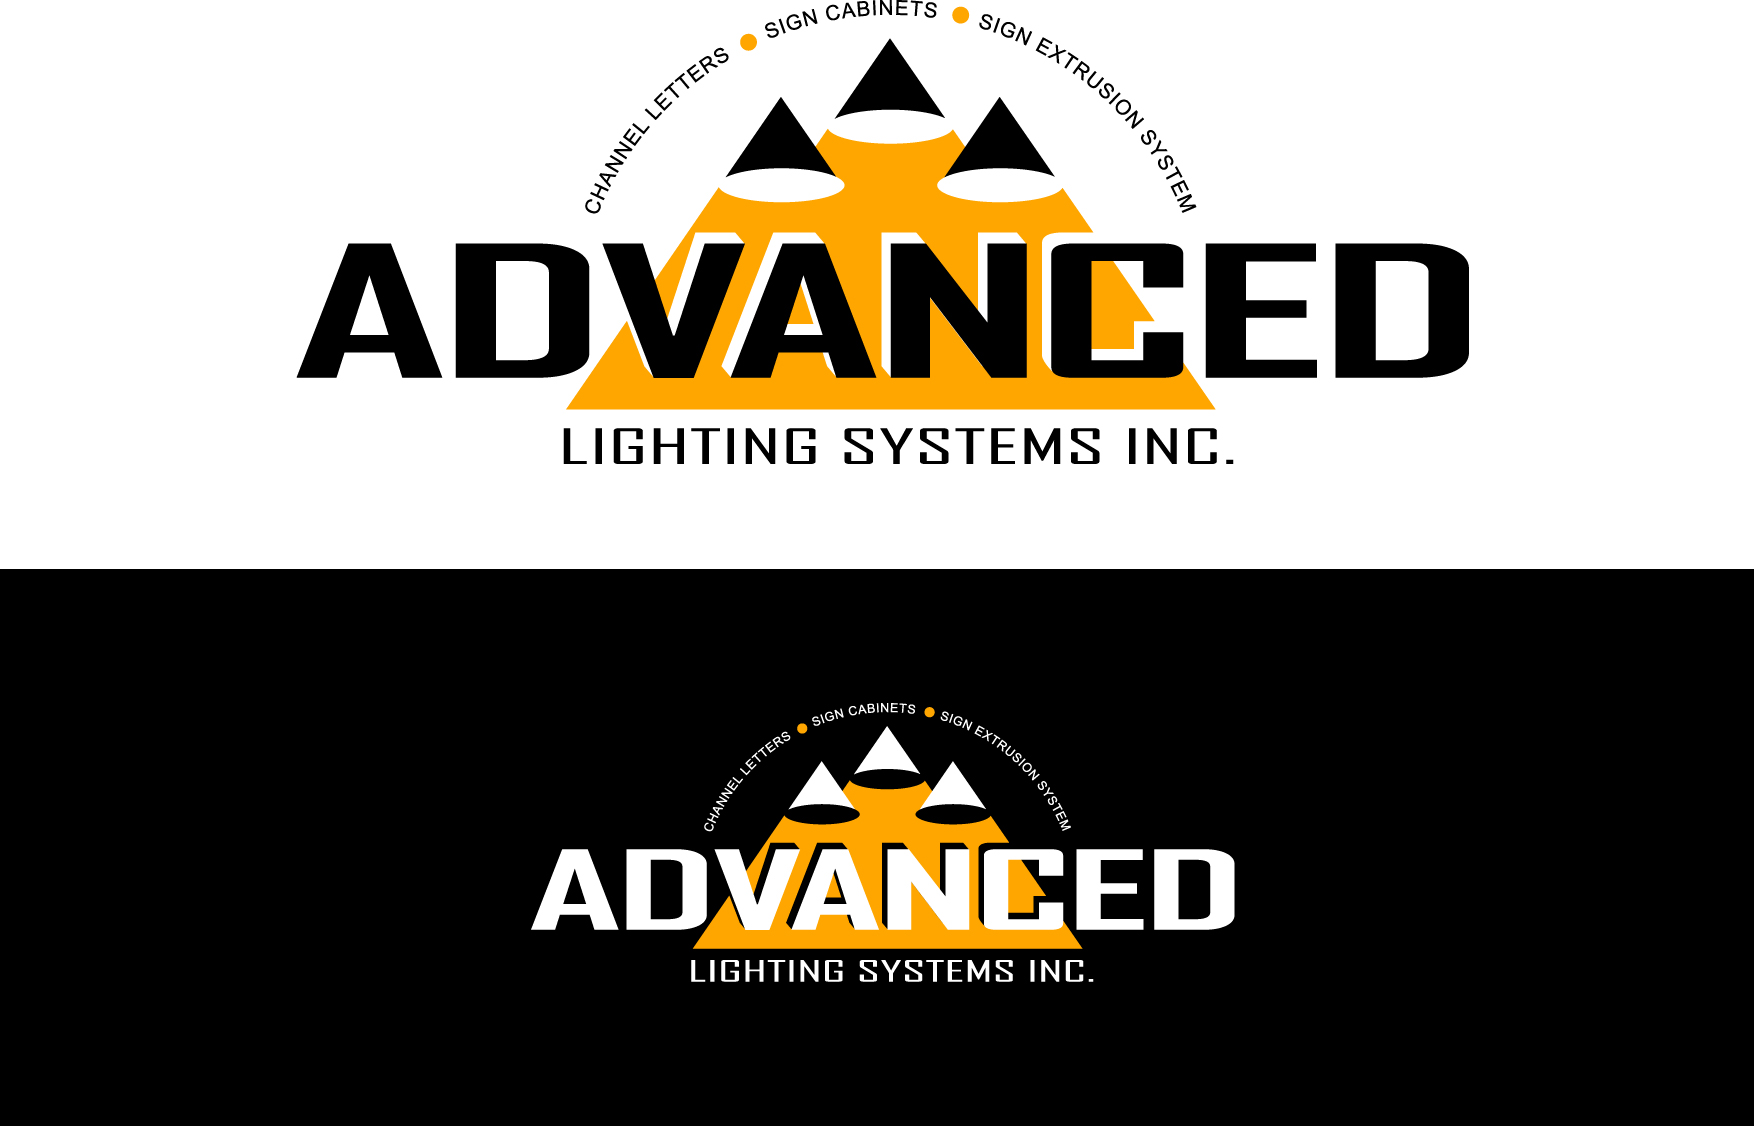 Logo Design by Wilfredo Mendoza - Entry No. 171 in the Logo Design Contest New Logo Design Needed for  Company Advanced Lighting Systems Inc..